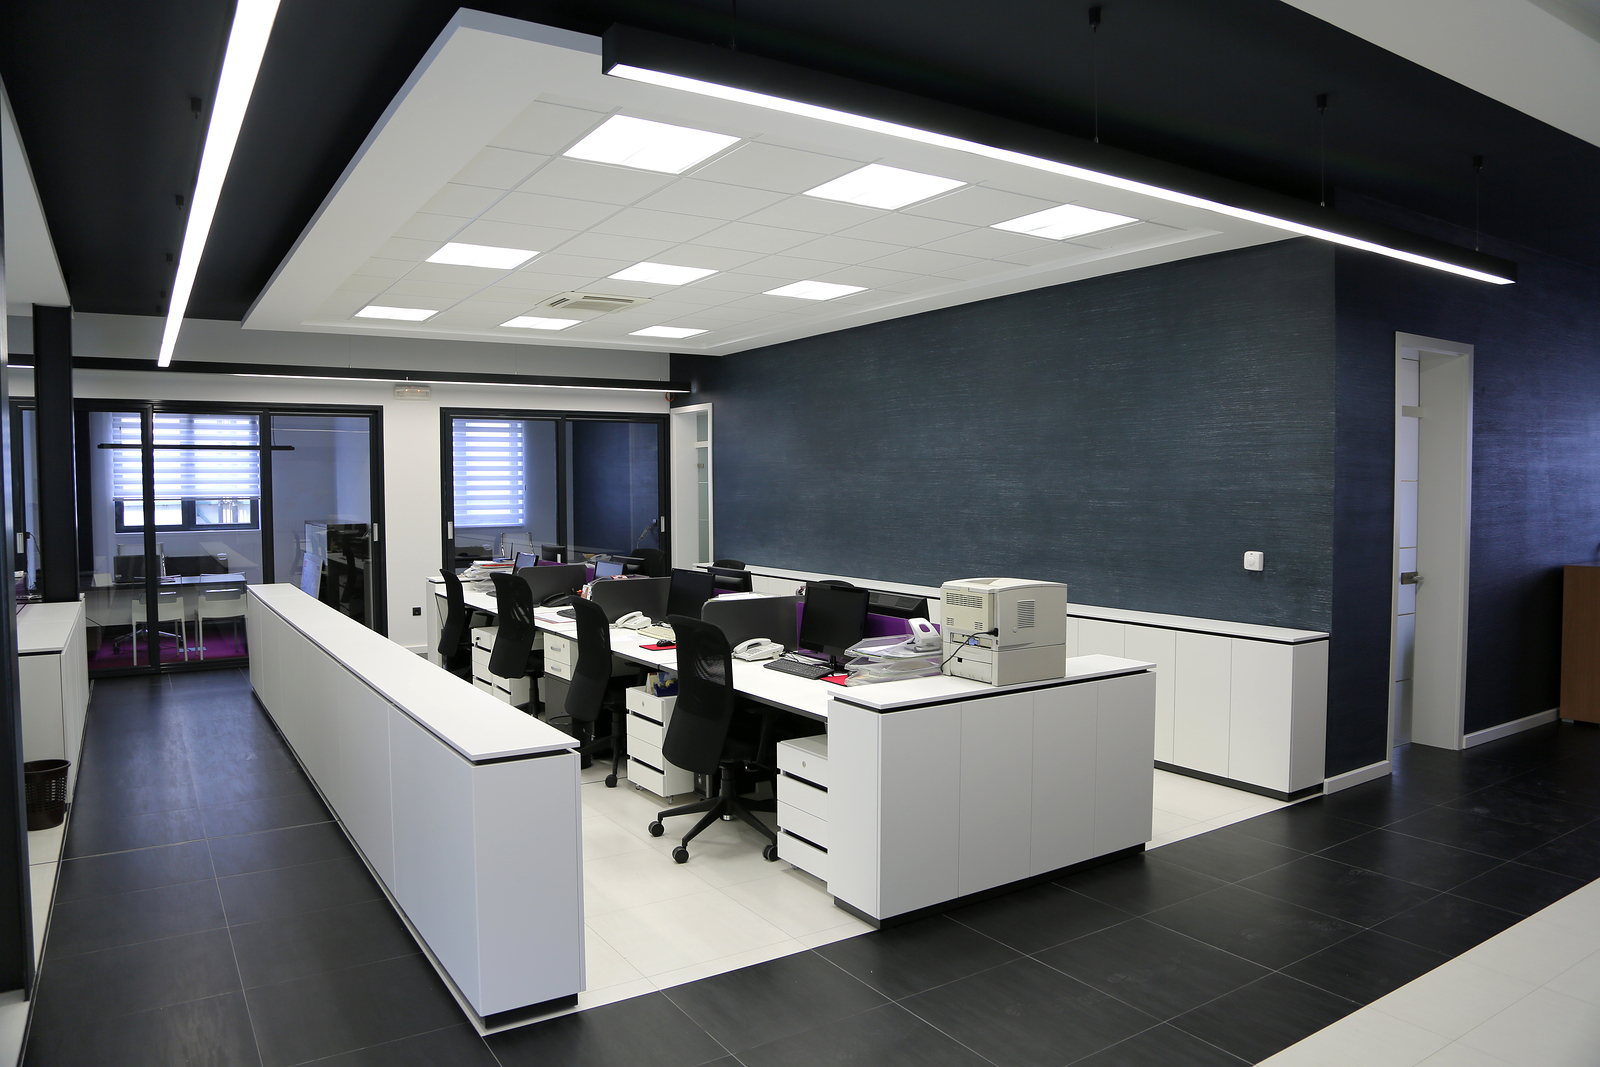 Office Interior Decorating Low Budget Interior Design